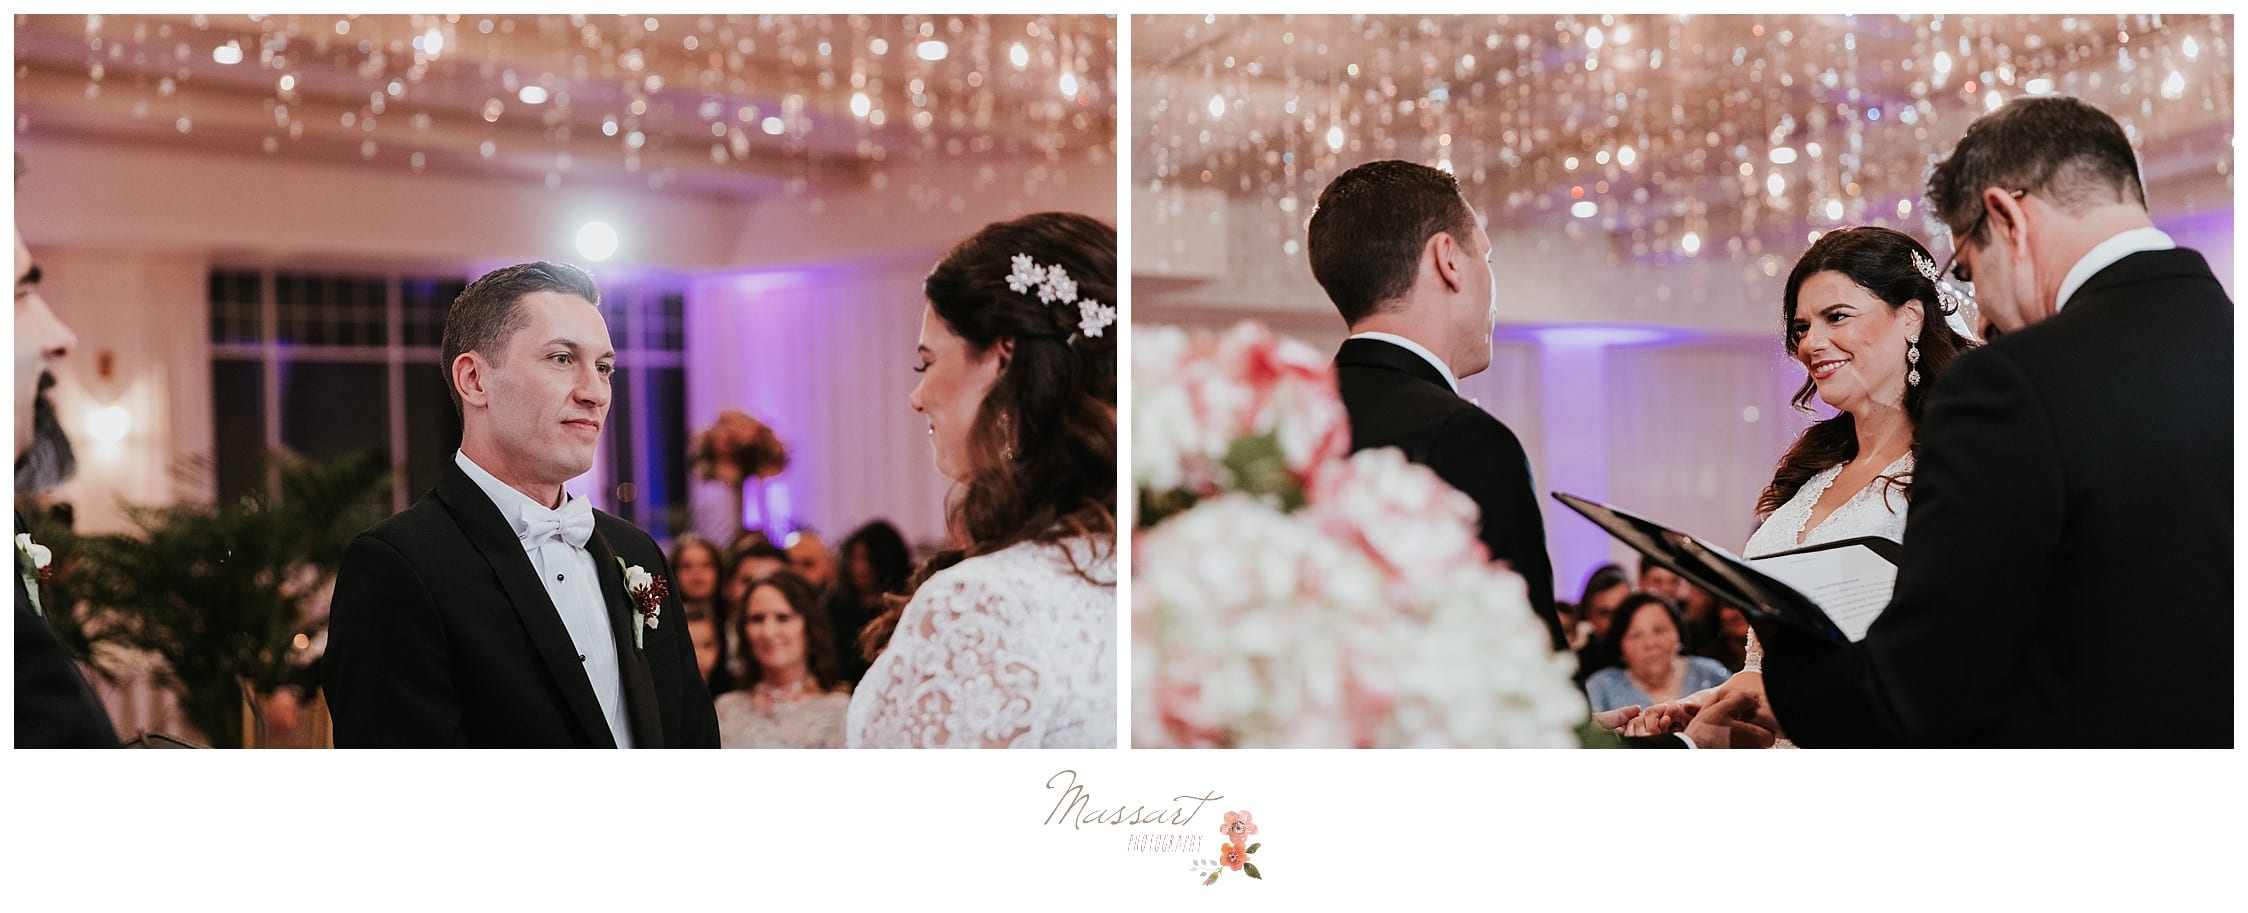 Bride and groom exchange vows during their atlantic resort wedding ceremony